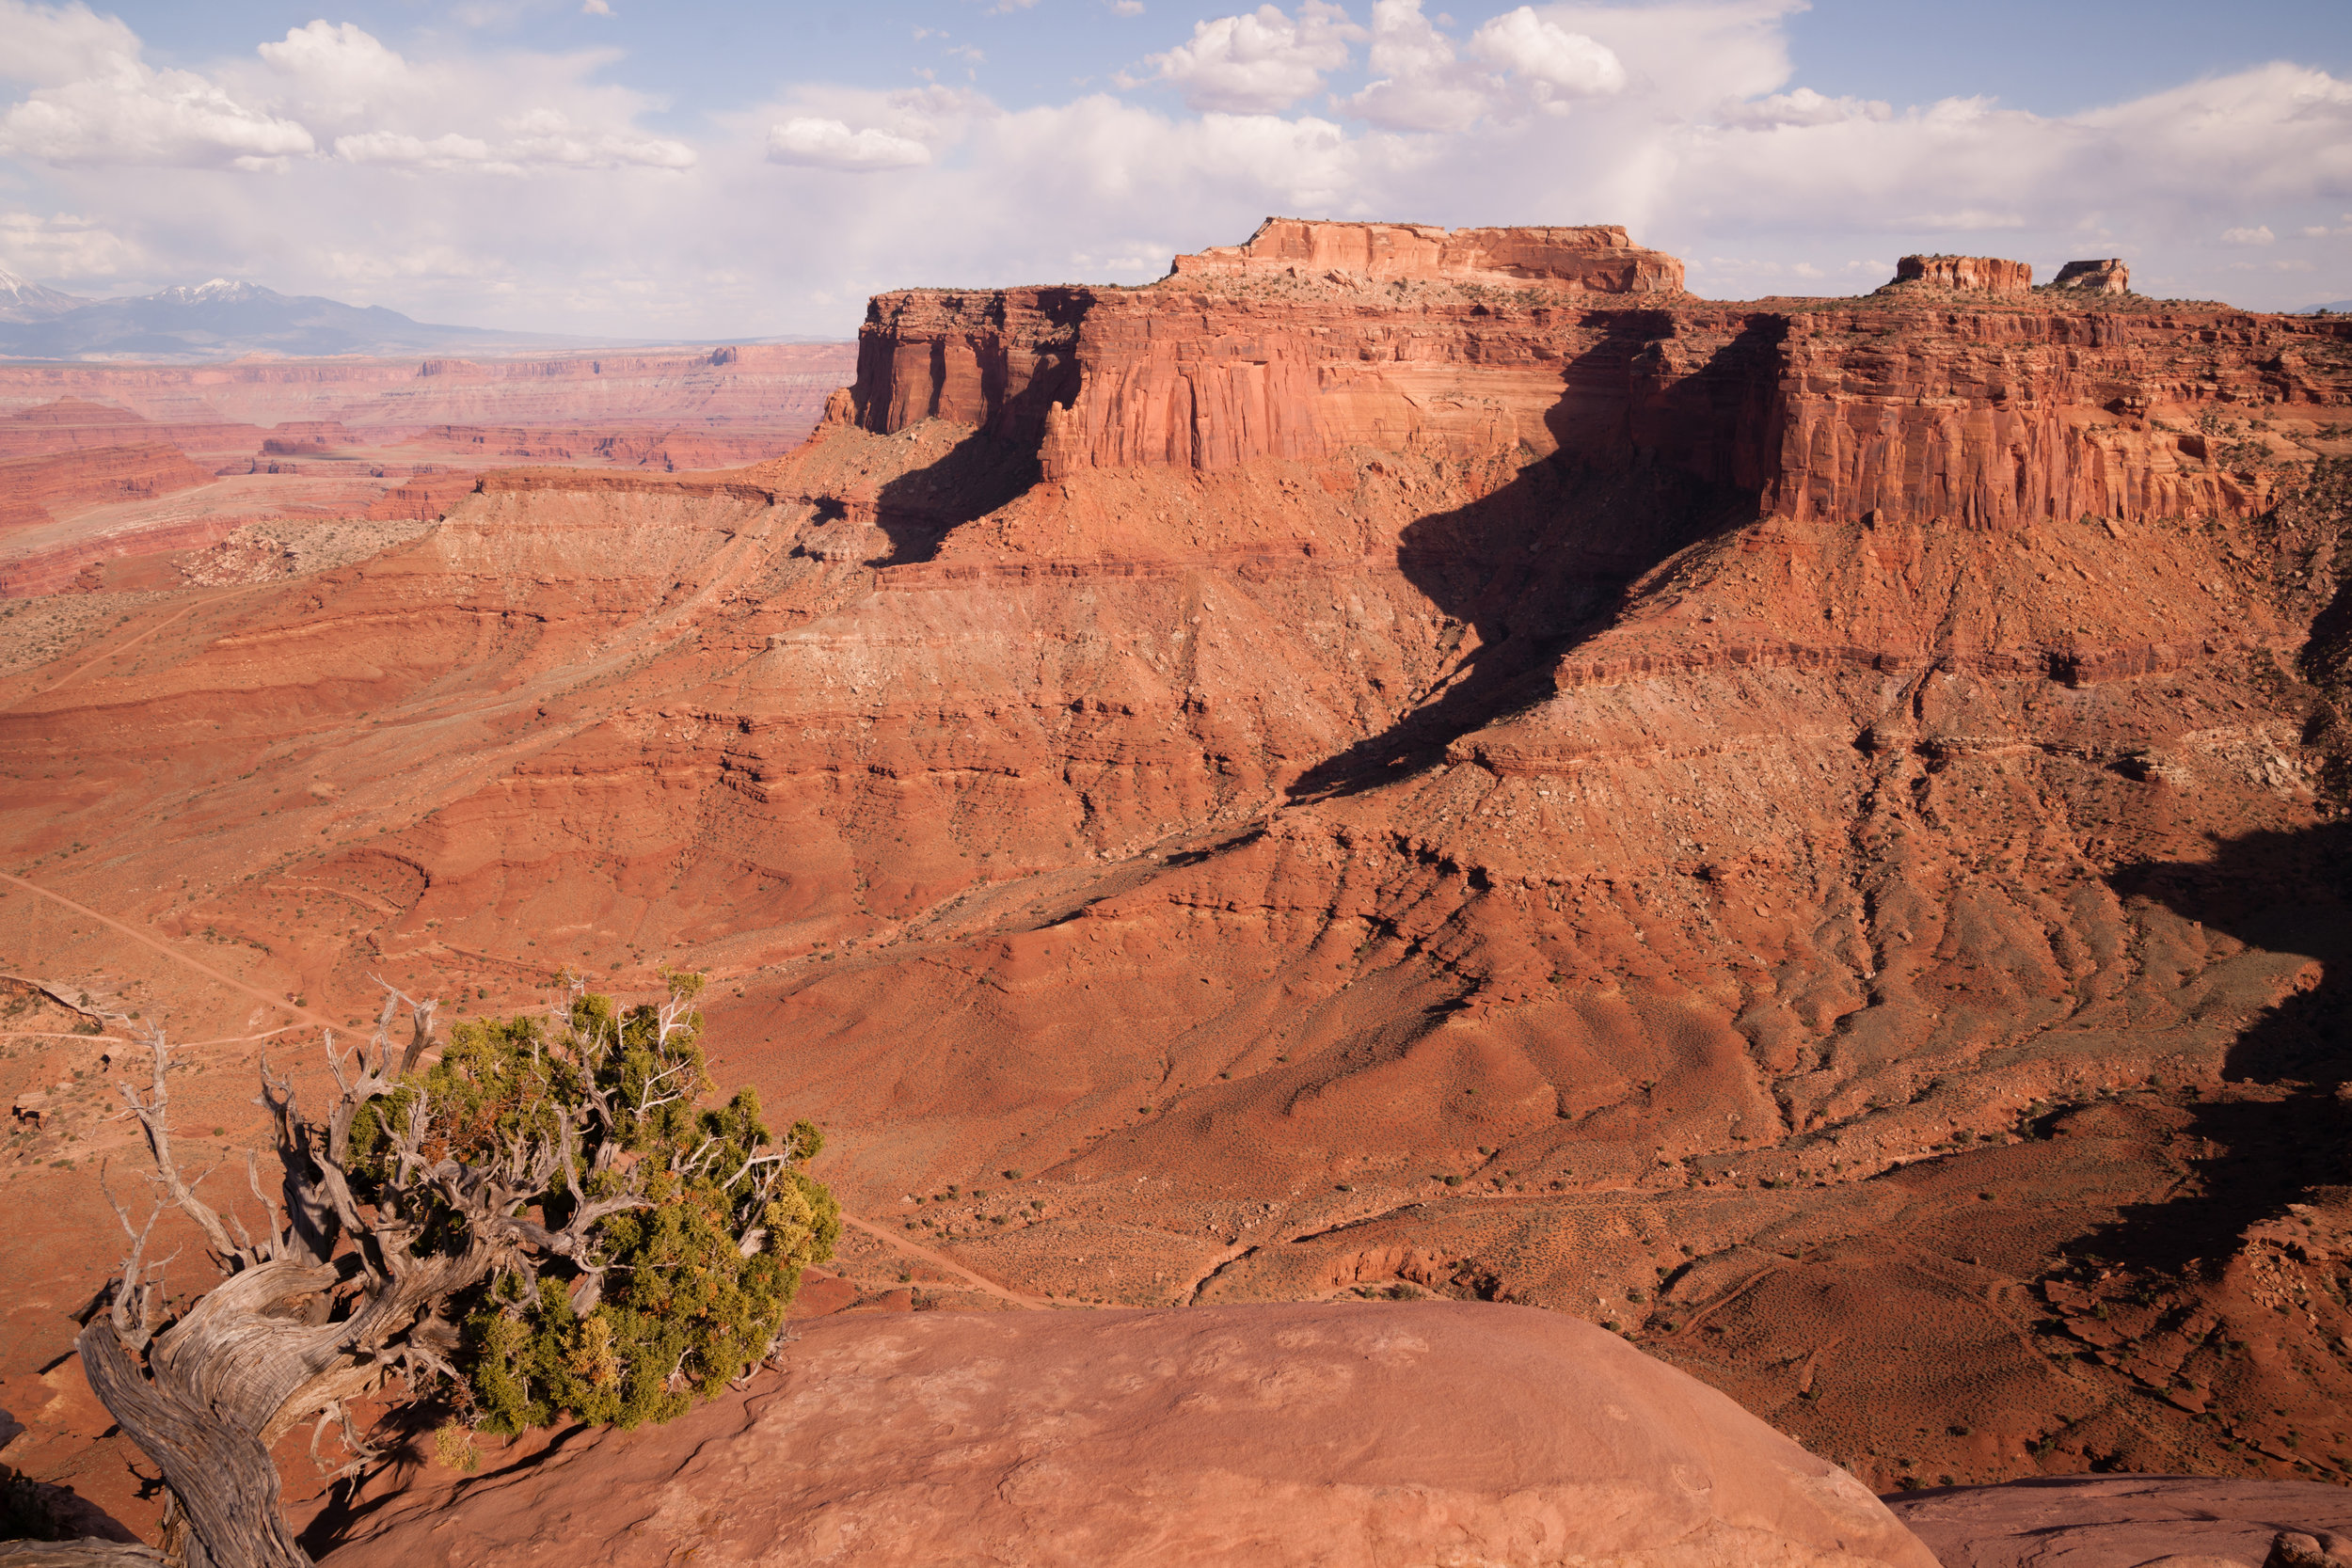 canyonlands-national-park-southeastern-utah-red-PTZ8PBF.jpg